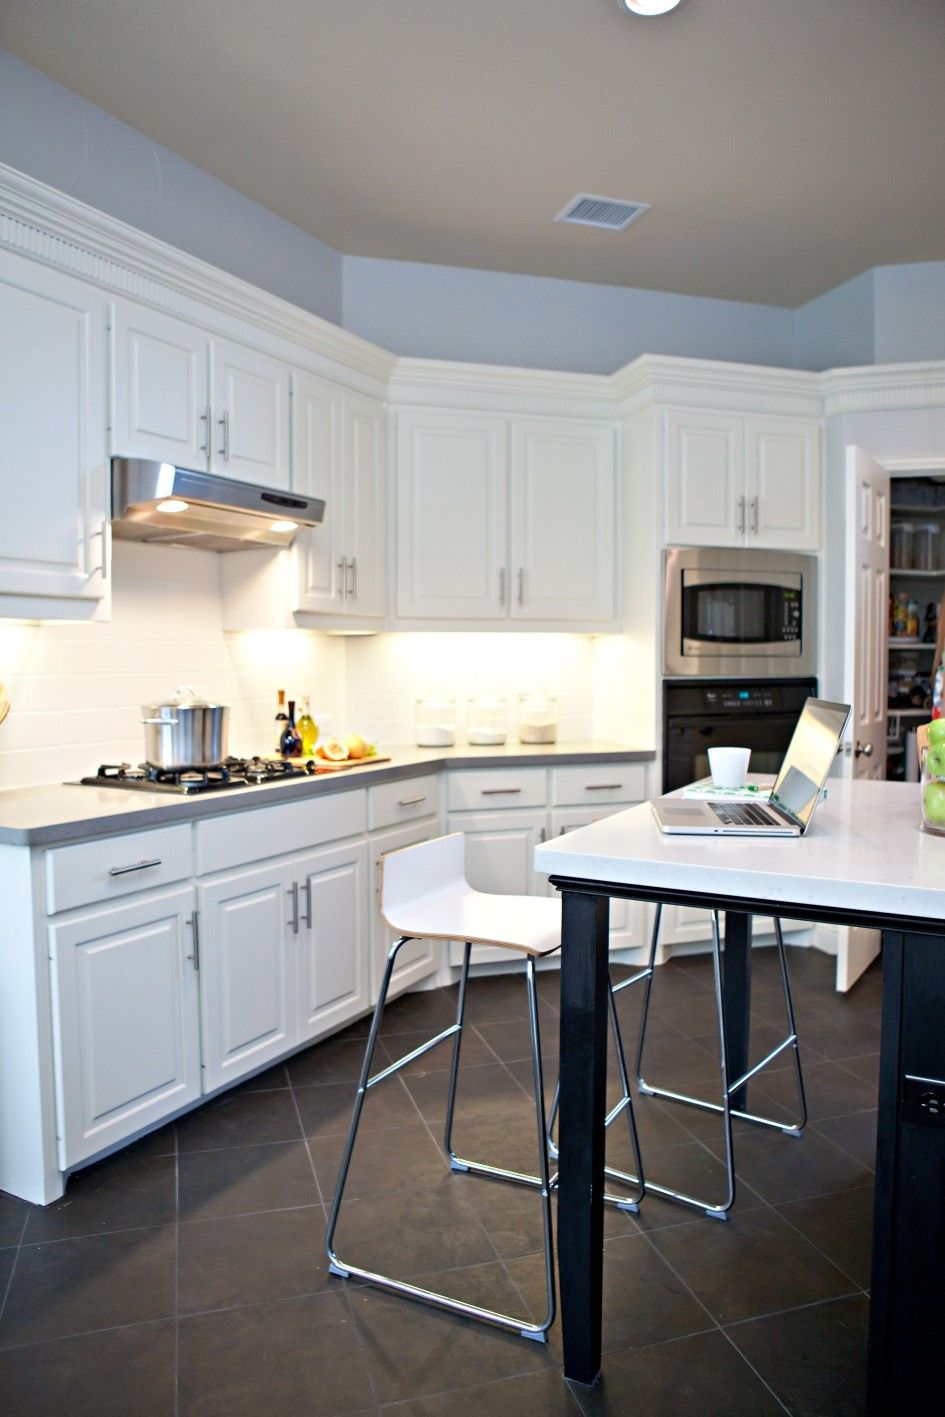 Kitchen Cool Black Ceramics Floor Tiles For With Unique Chair Stainless Steel